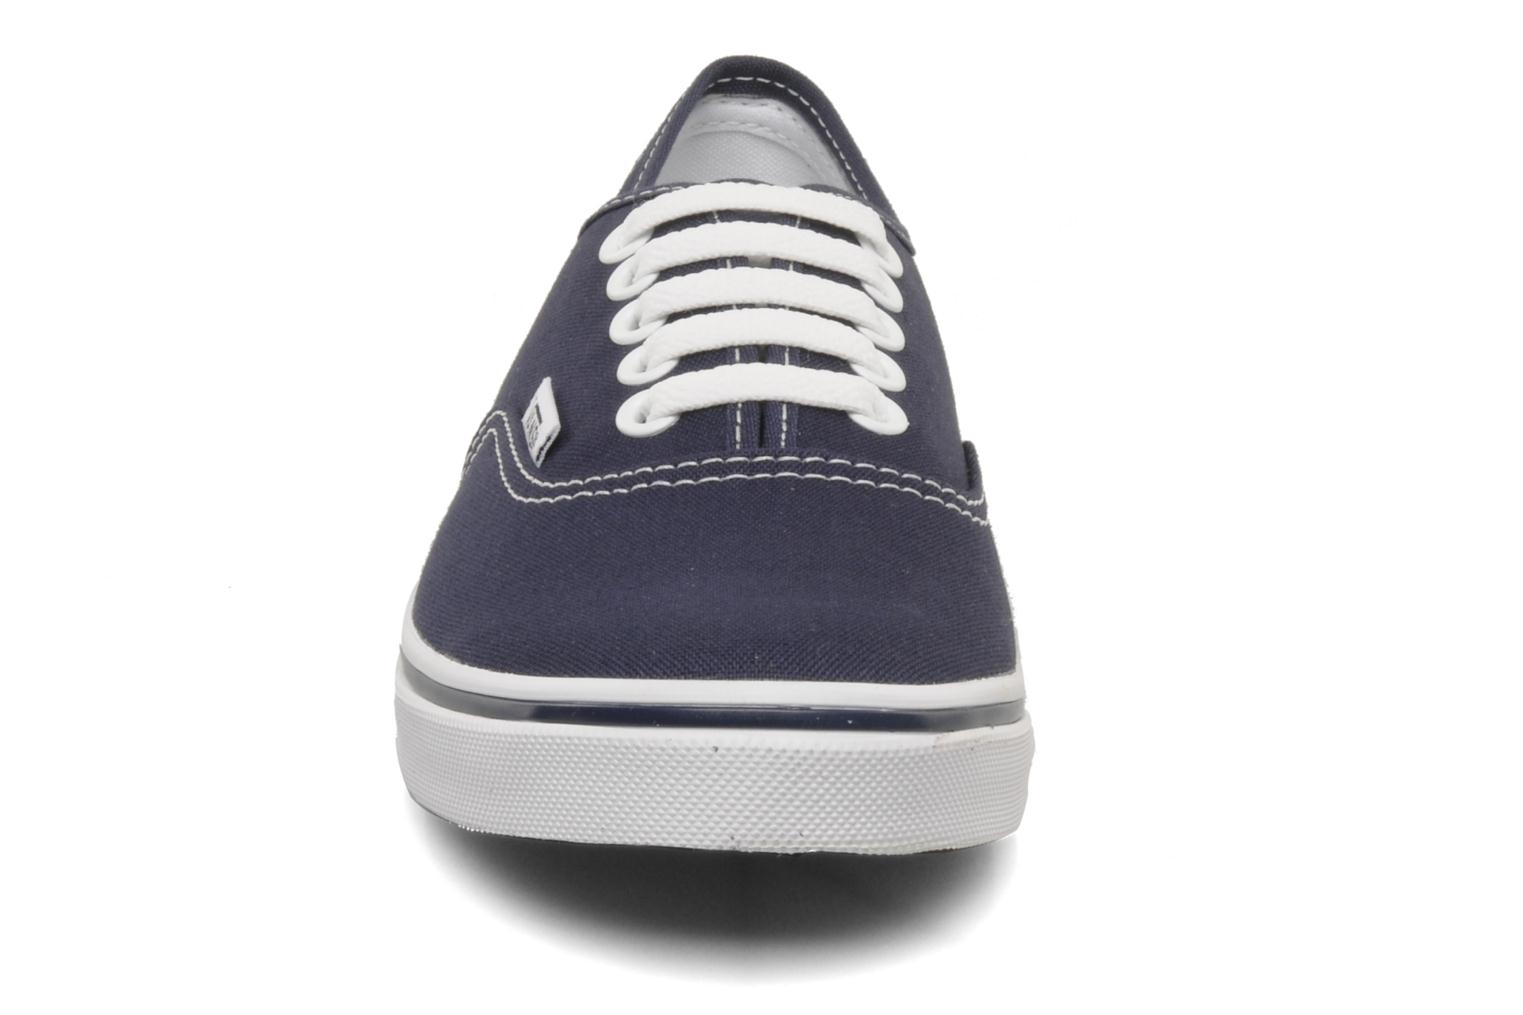 Authentic Lo Pro W Navy/True White